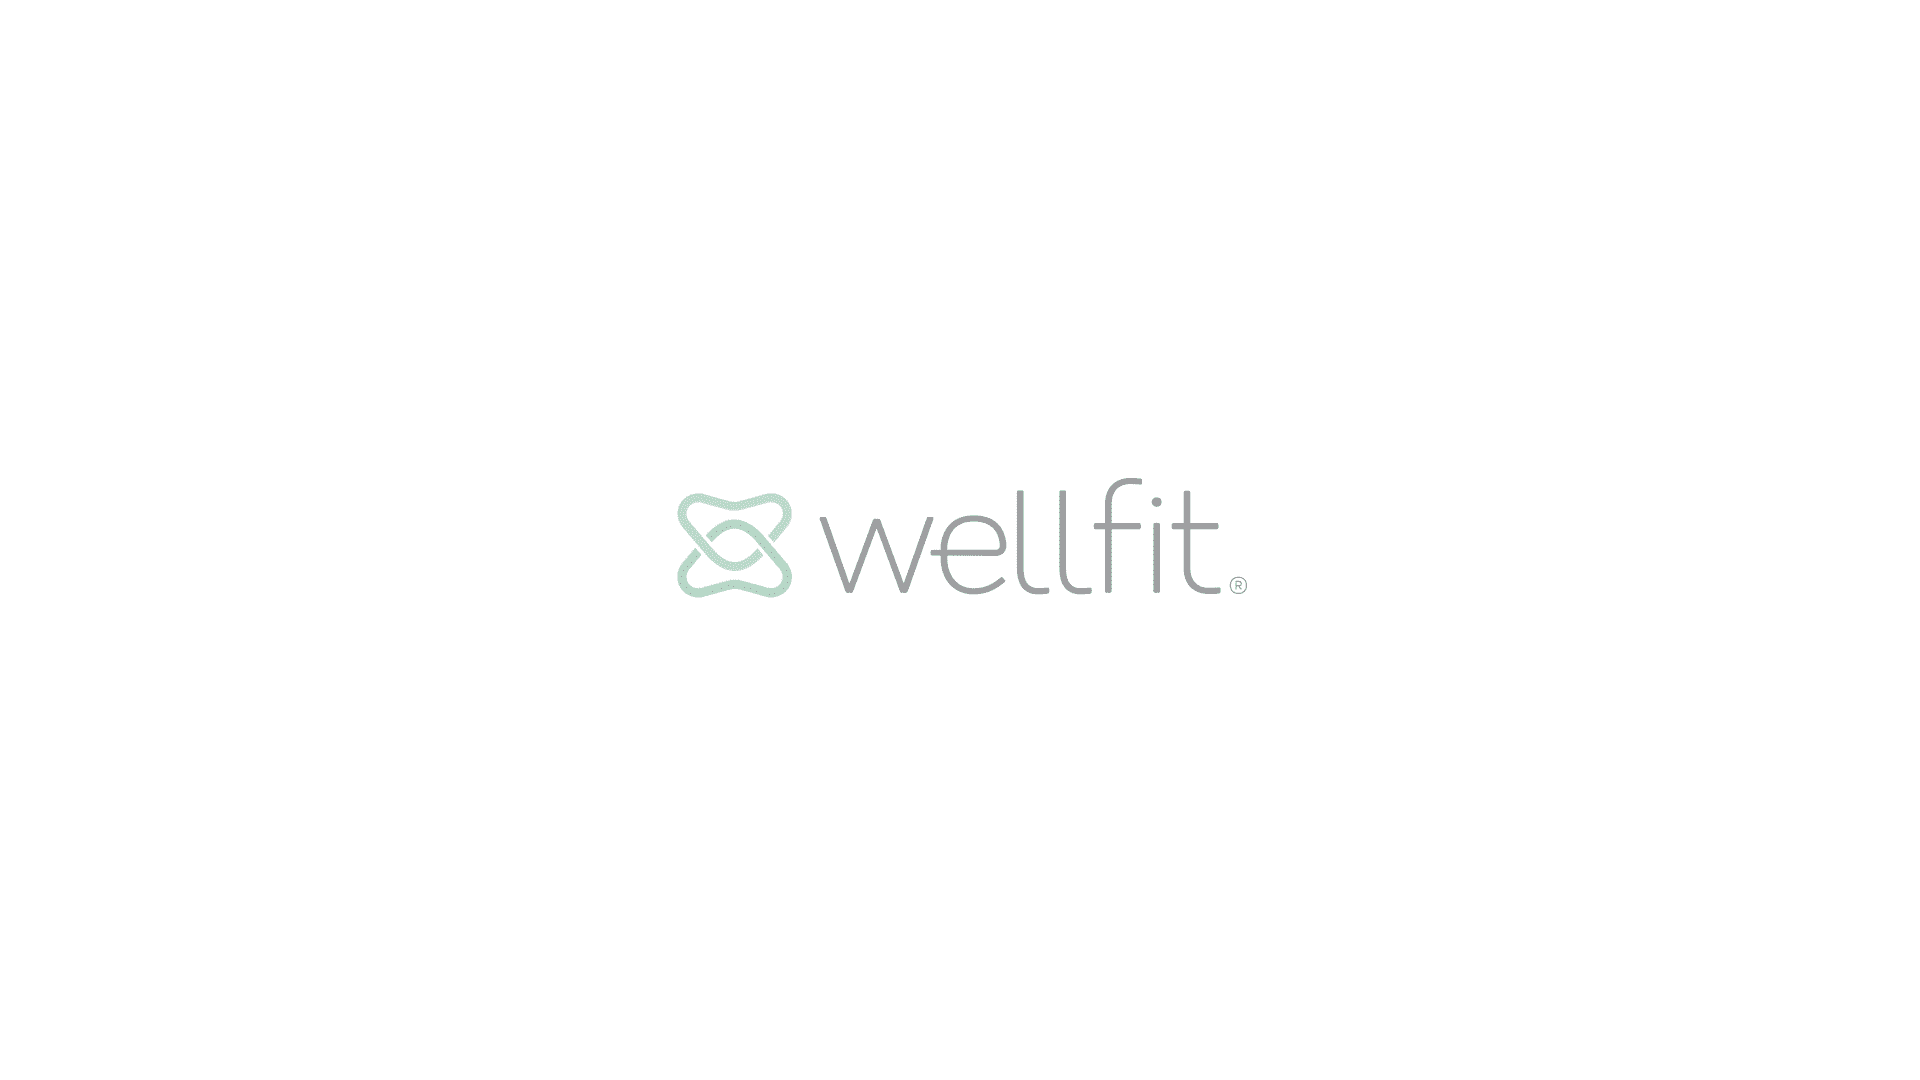 Preview image for Wellfit video animation.